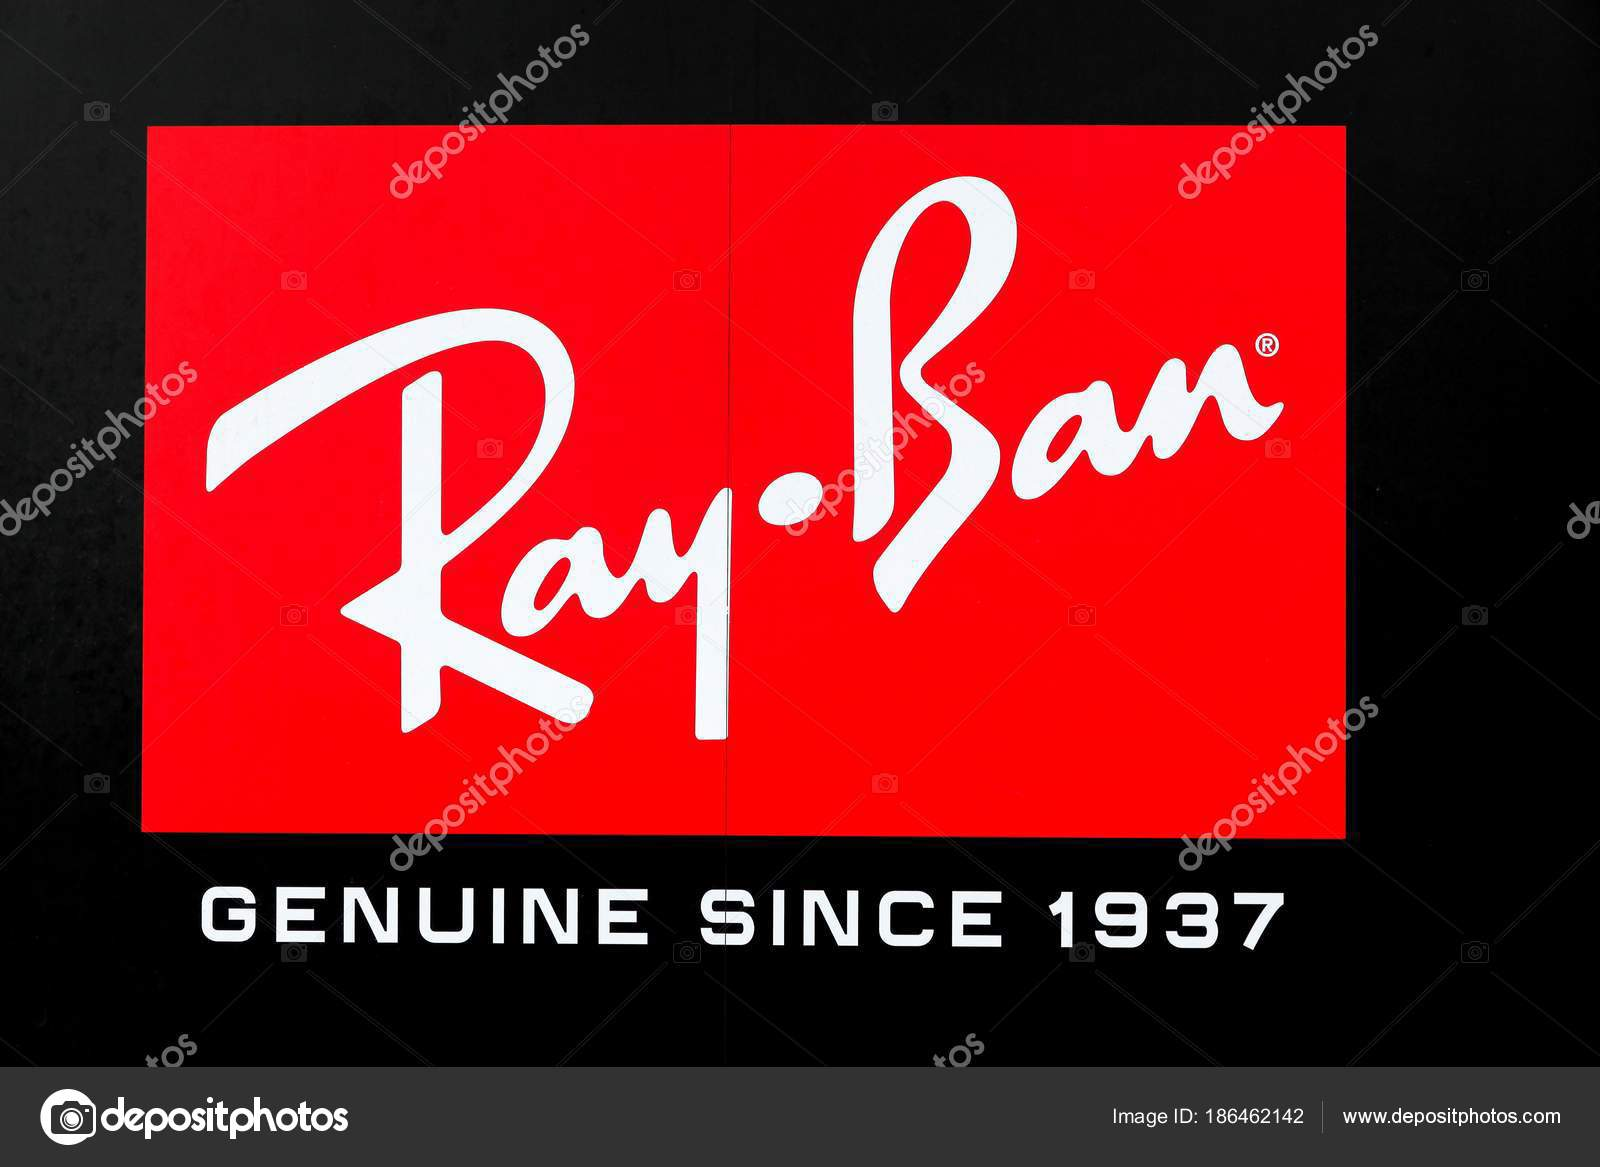 e4297ba971 Ray-Ban is a brand of sunglasses and eyeglasses founded in 1937 by the  American company Bausch   Lomb — Photo by ...